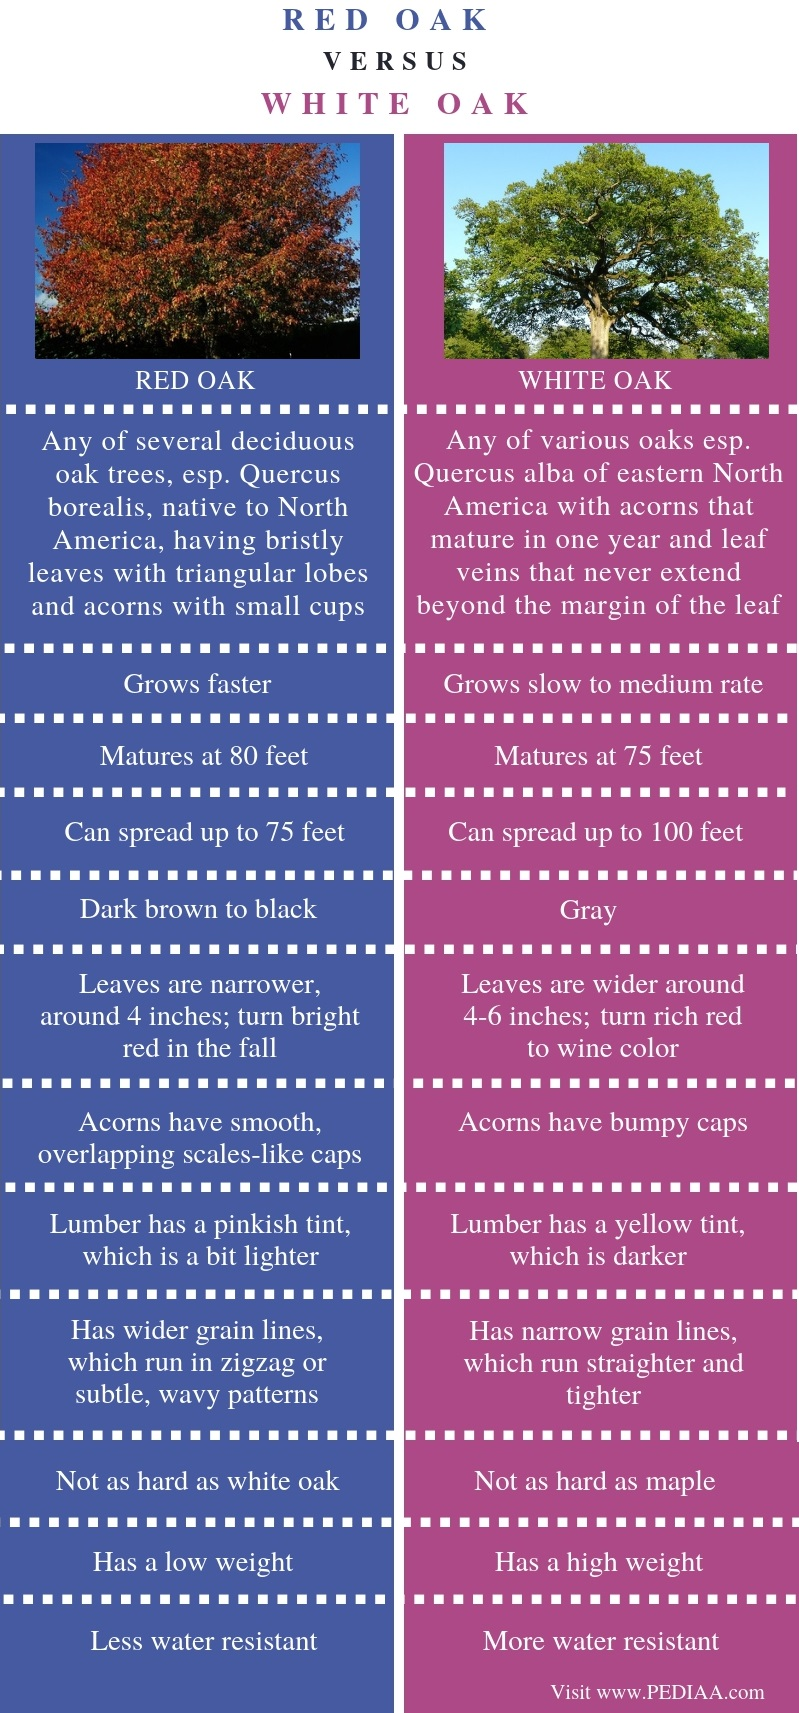 Difference Between Red Oak and White Oak - Comparison Summary